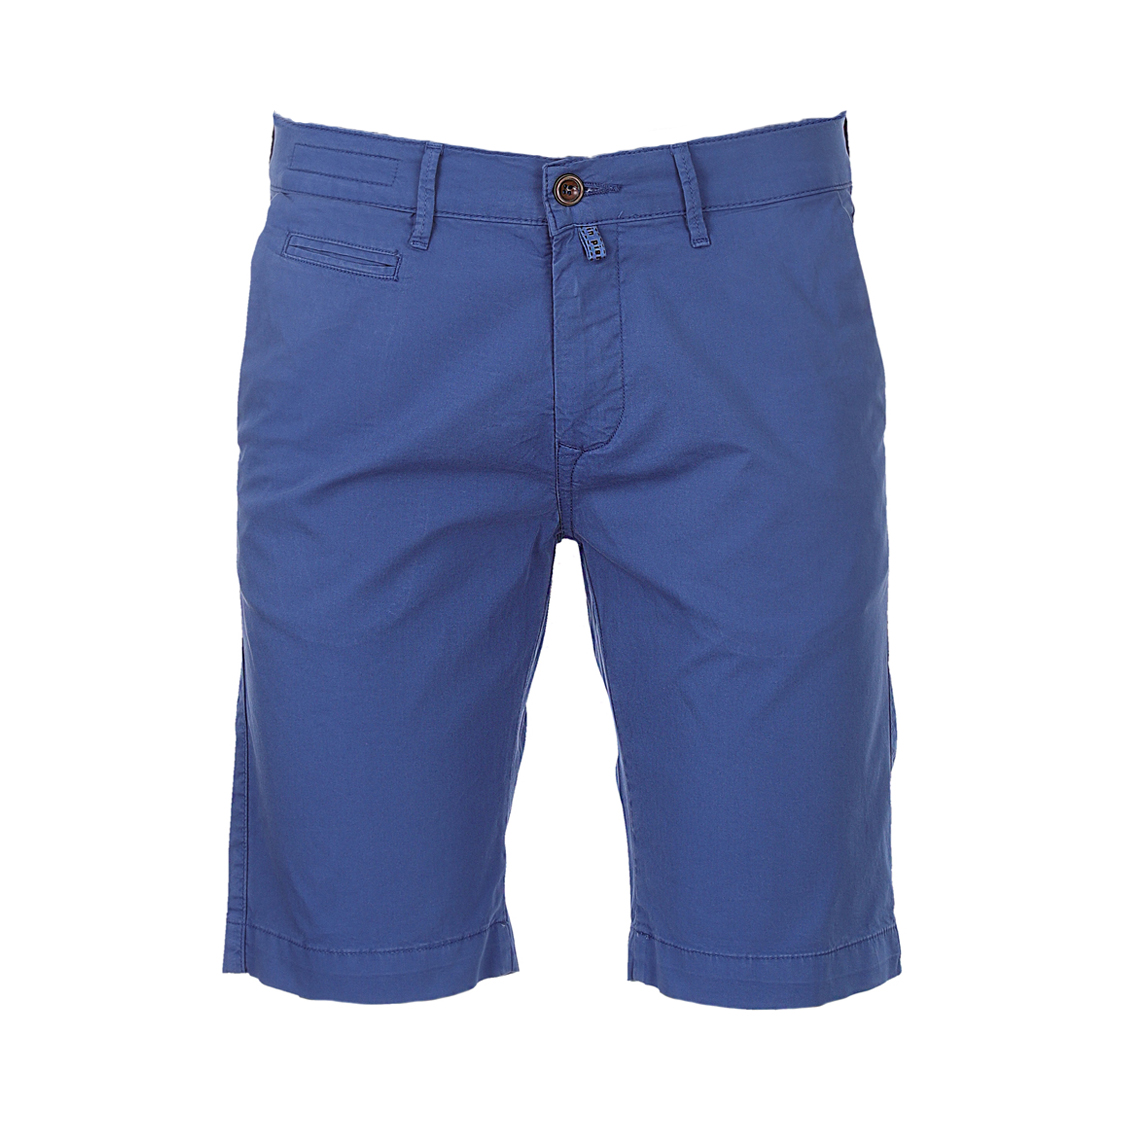 Short chino  lyon en coton stretch bleu indigo